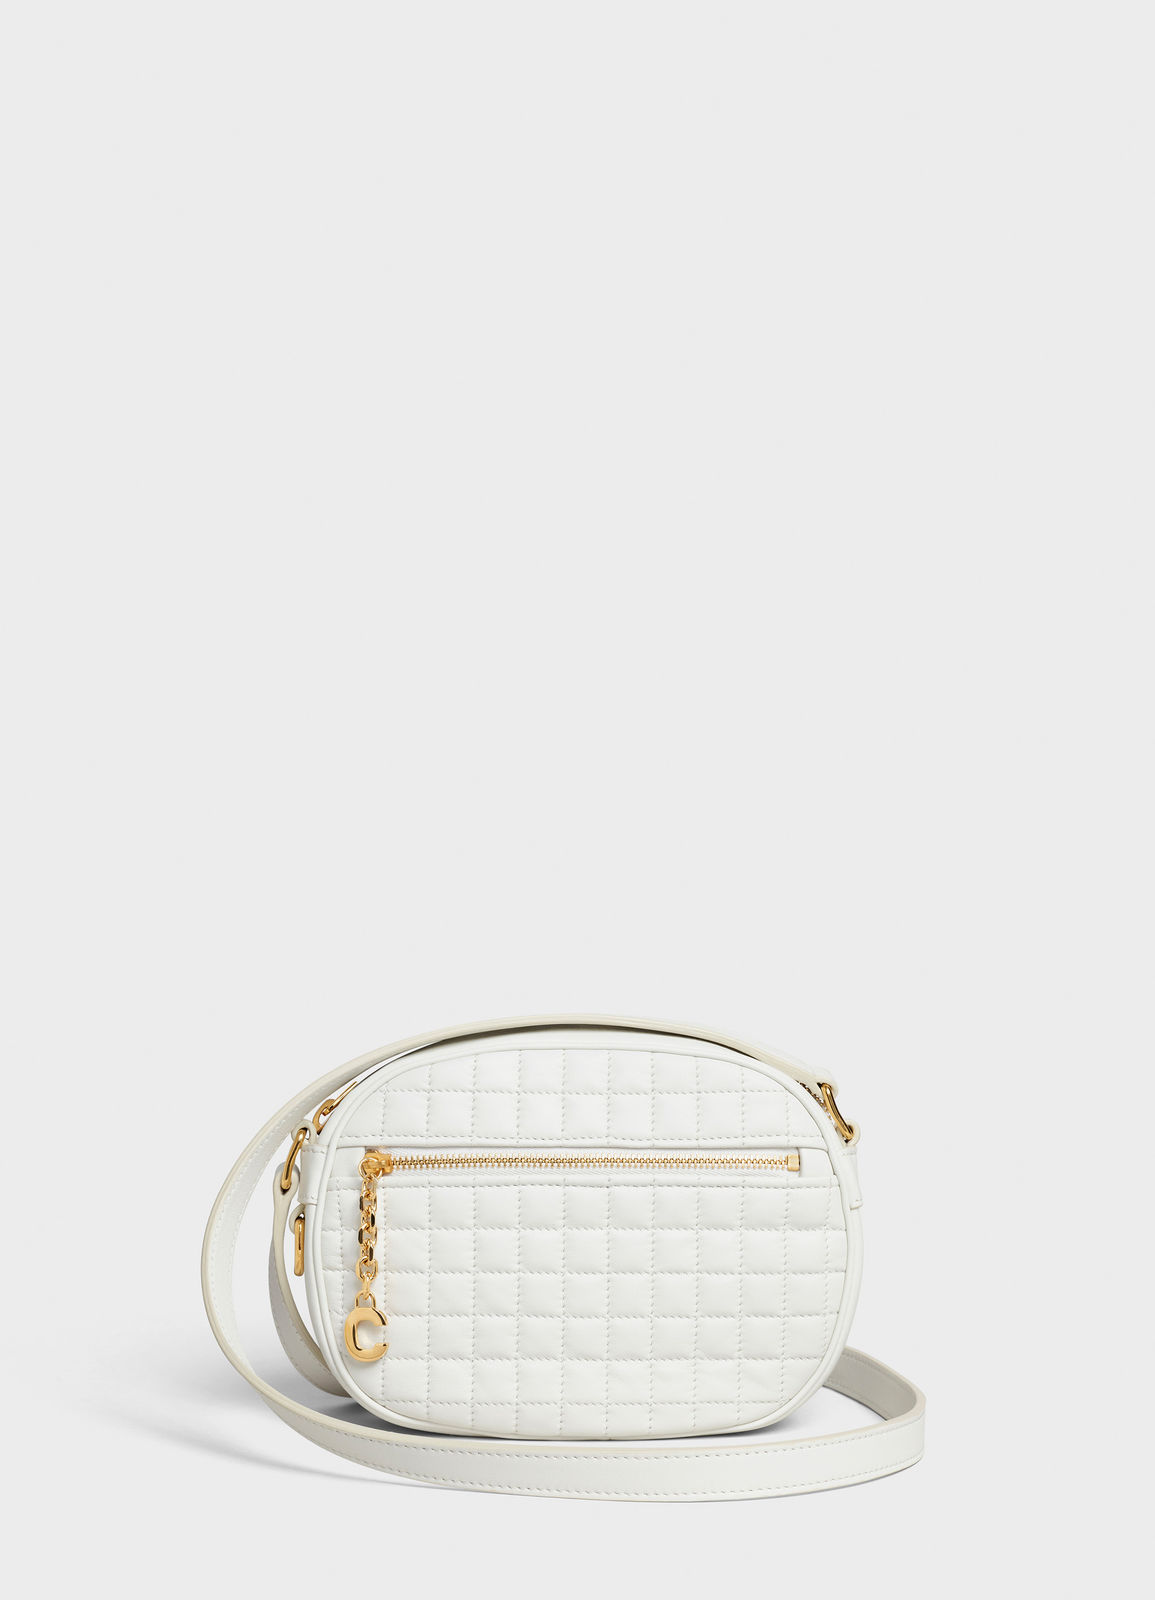 CELINE CROSS BODY SMALL C CHARM BAG IN QUILTED CALFSKIN 188363 WHITE